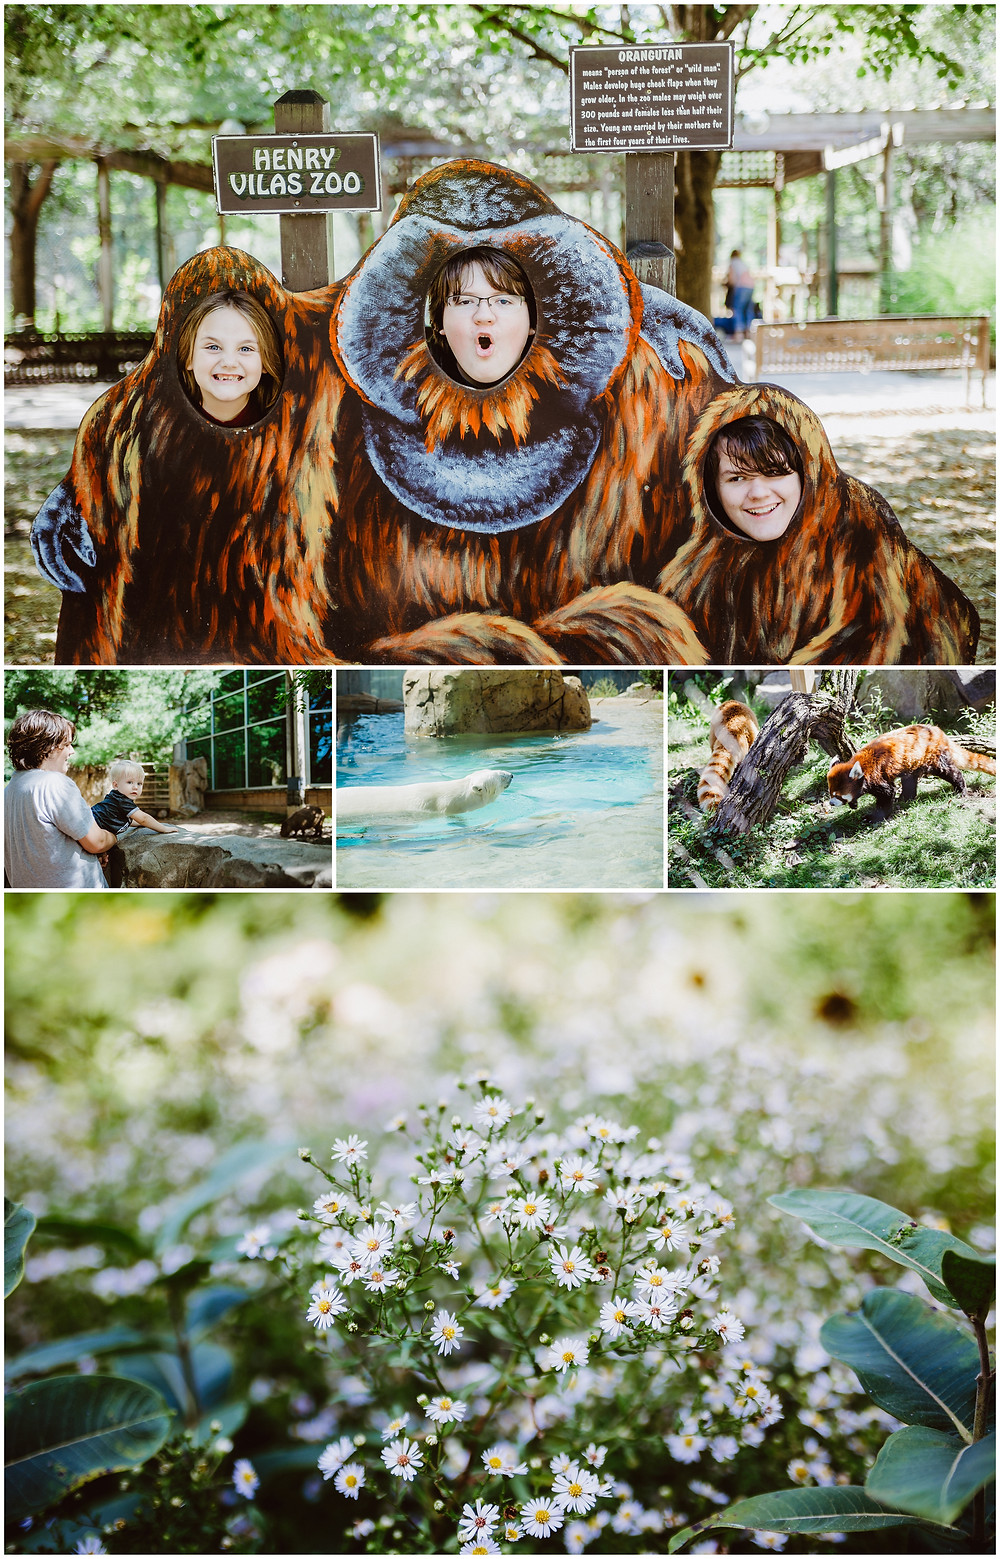 Henry Vilas Zoo, Travel Photography